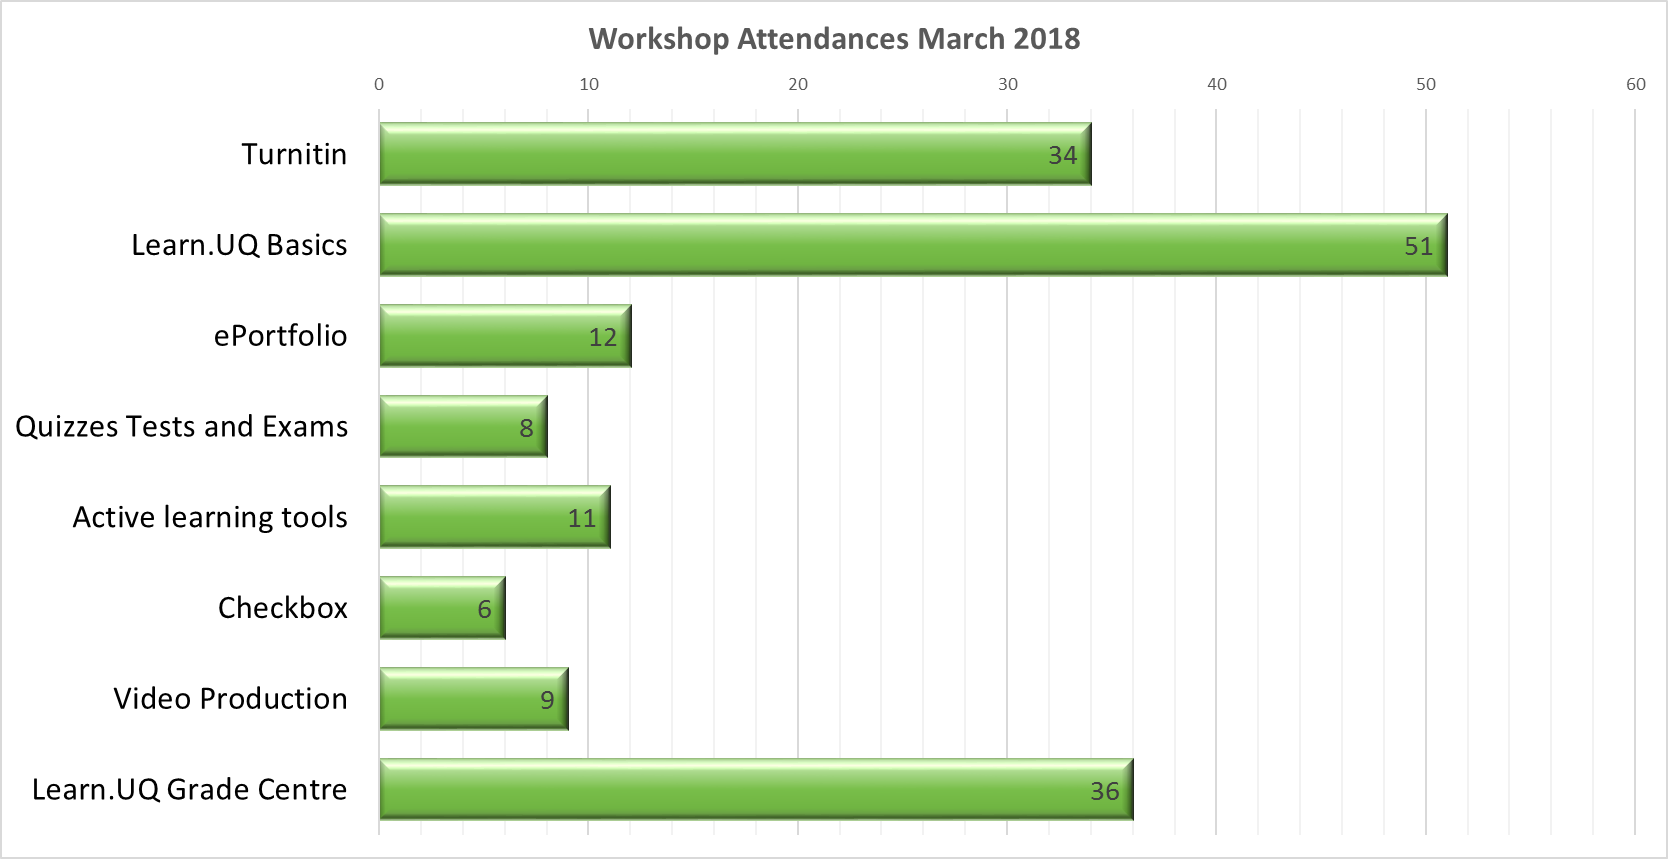 Chart of Workshop Attendances February 2018